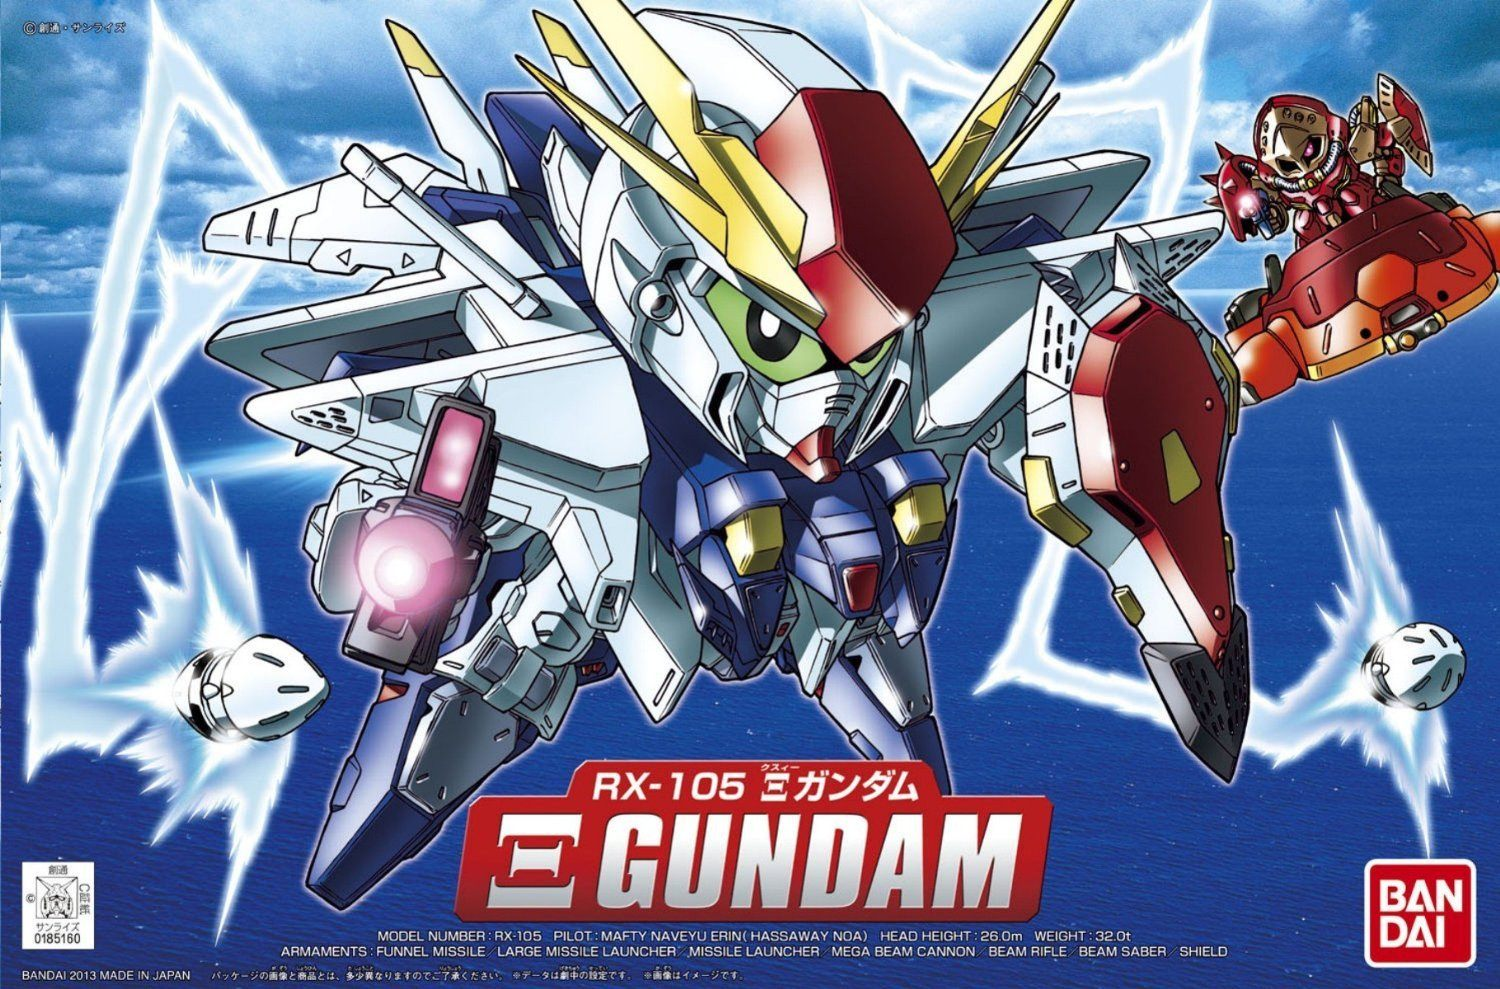 Bandai Hobby BB#386 Xi Gundam Model Kit